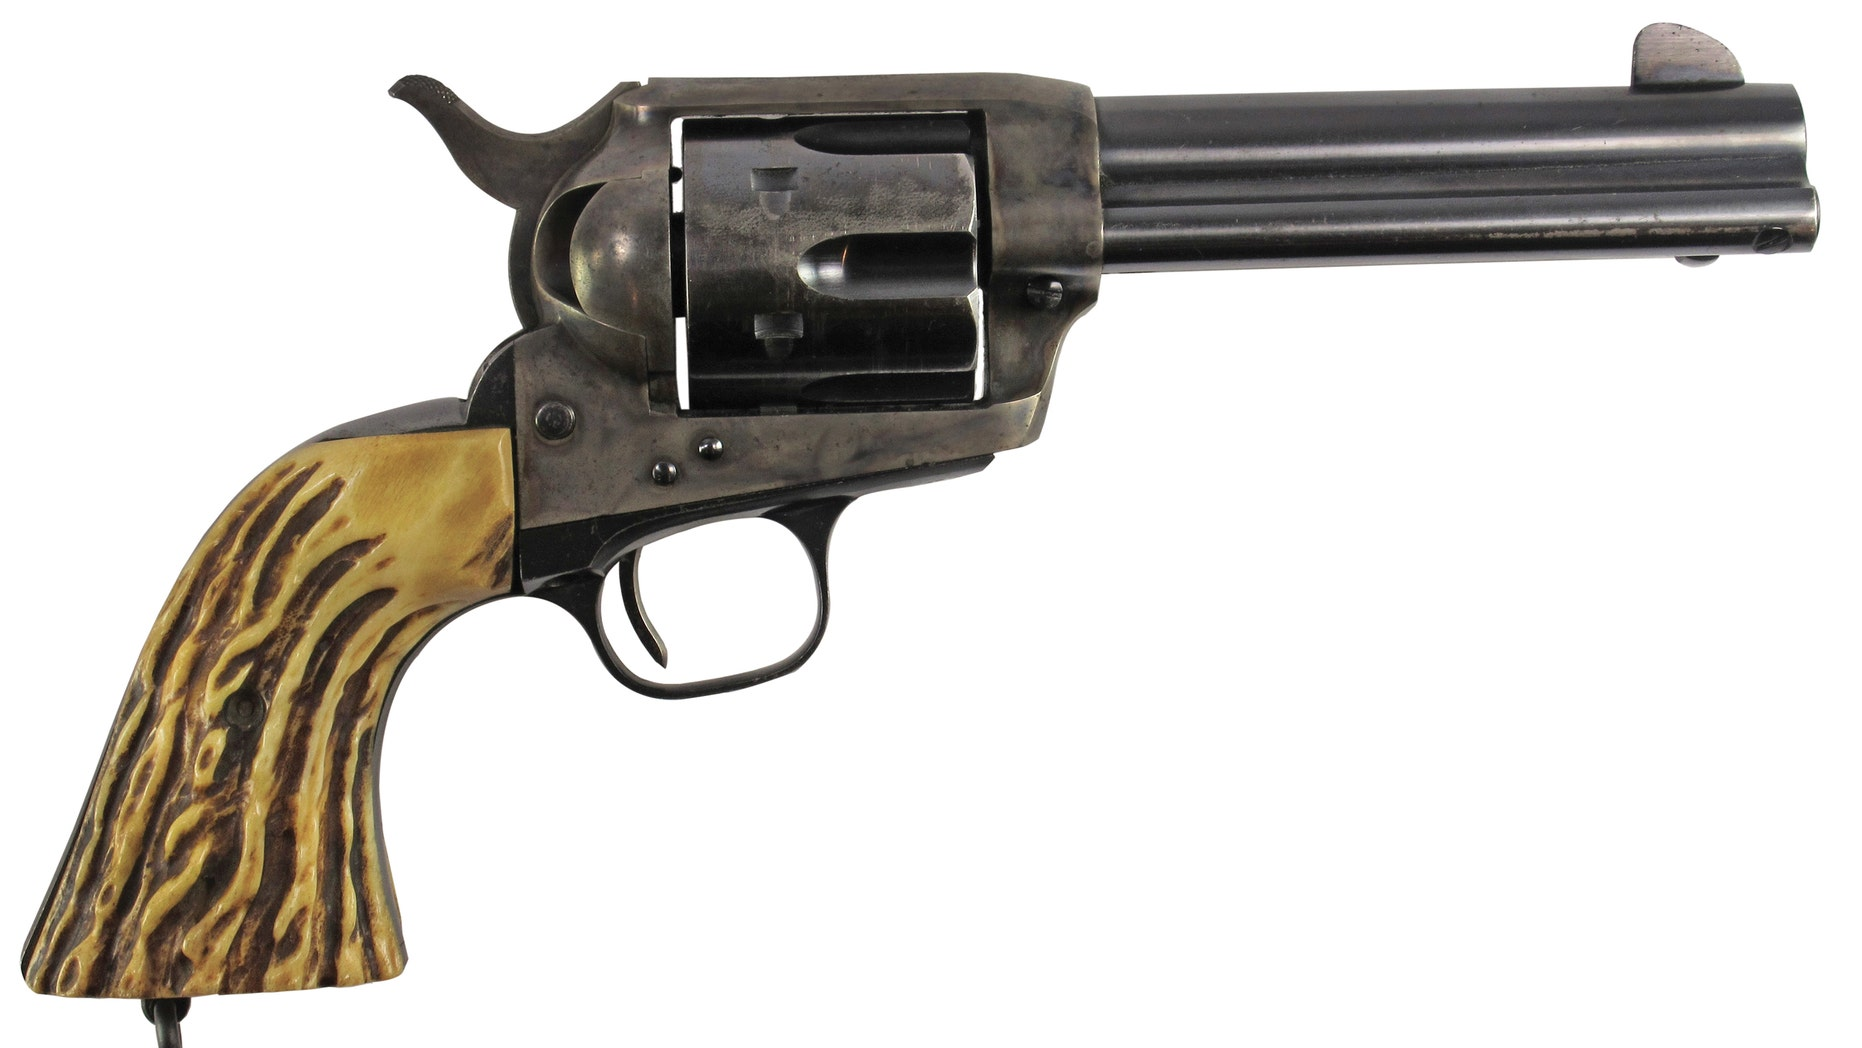 A Colt. 45 revolver owned by General George Patton sold for $75,000 at auction.